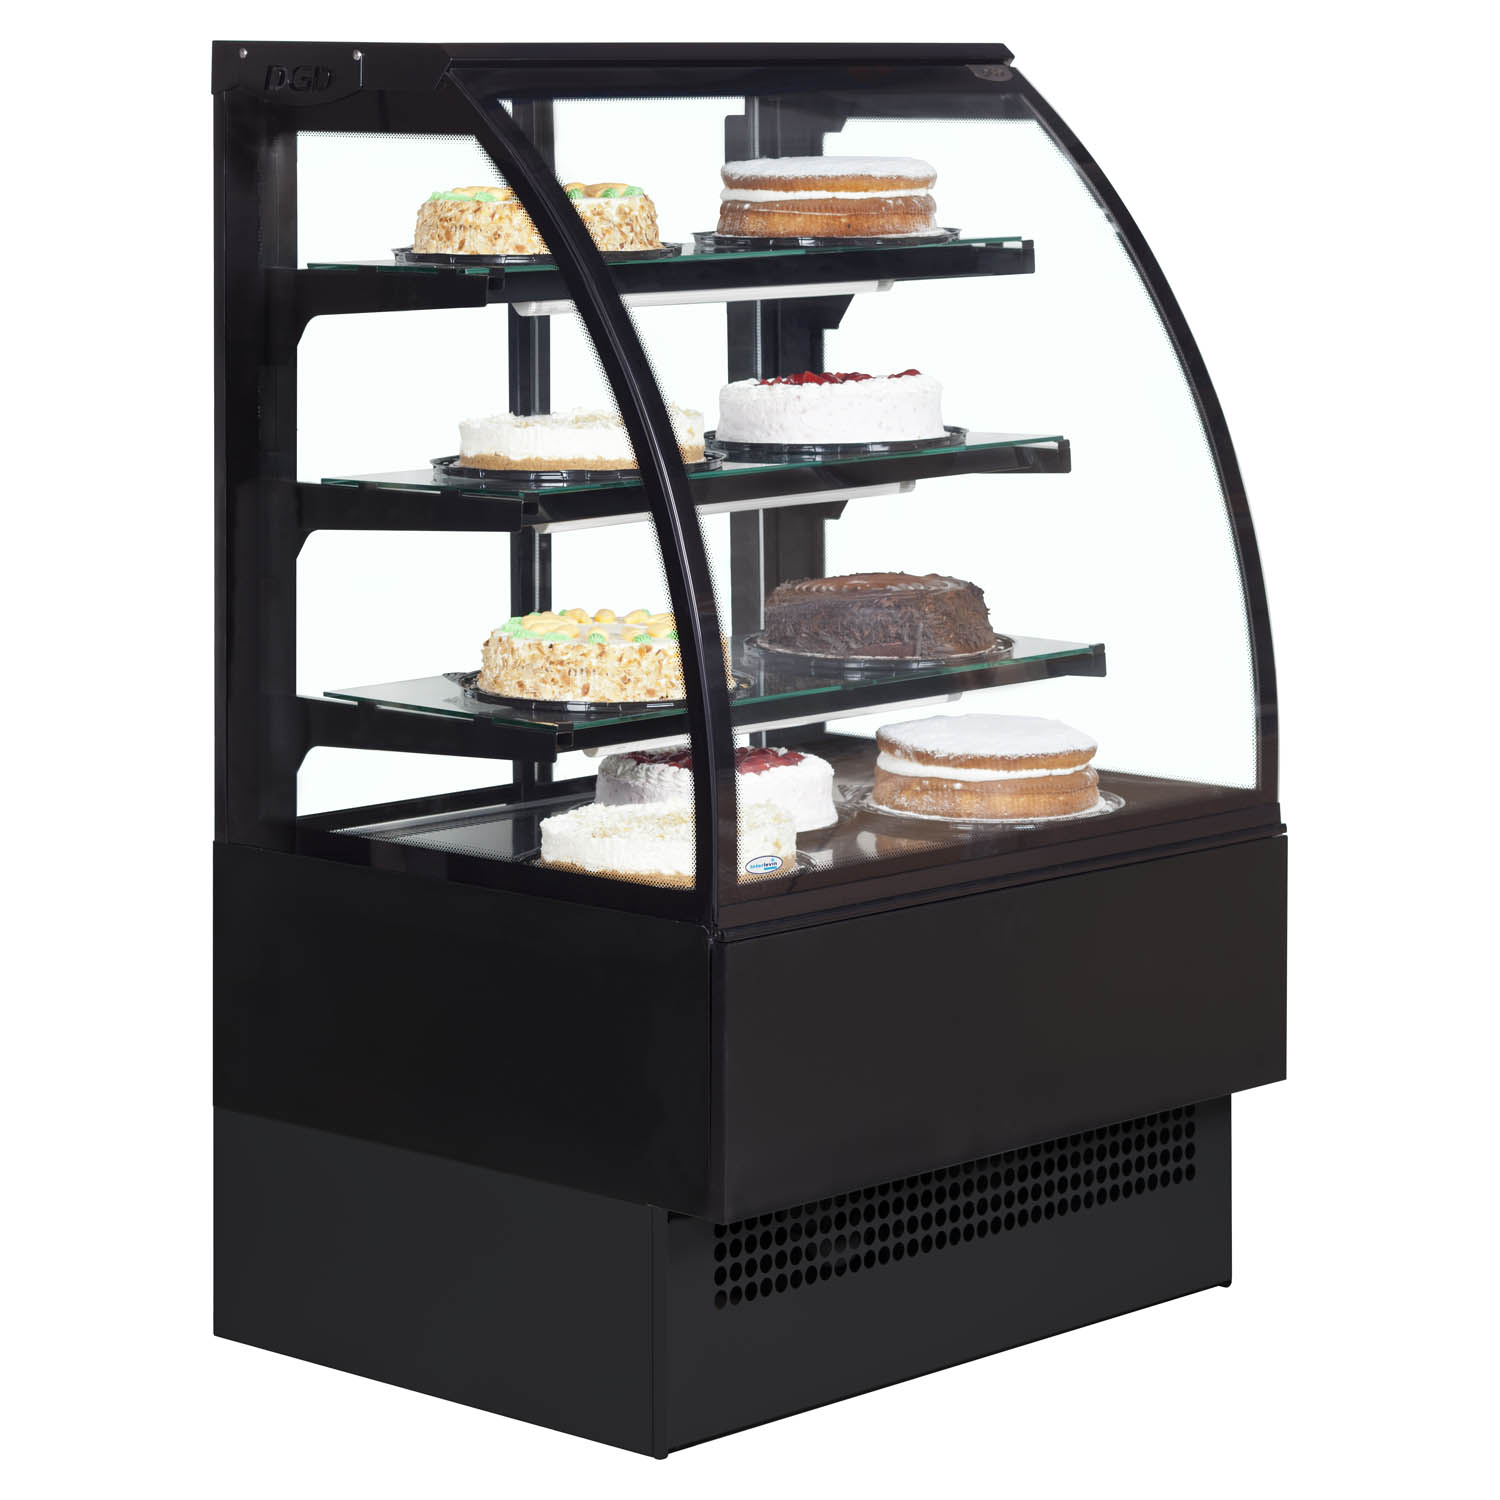 Interlevin Italia Range EVO600 B Patisserie Display Cabinet